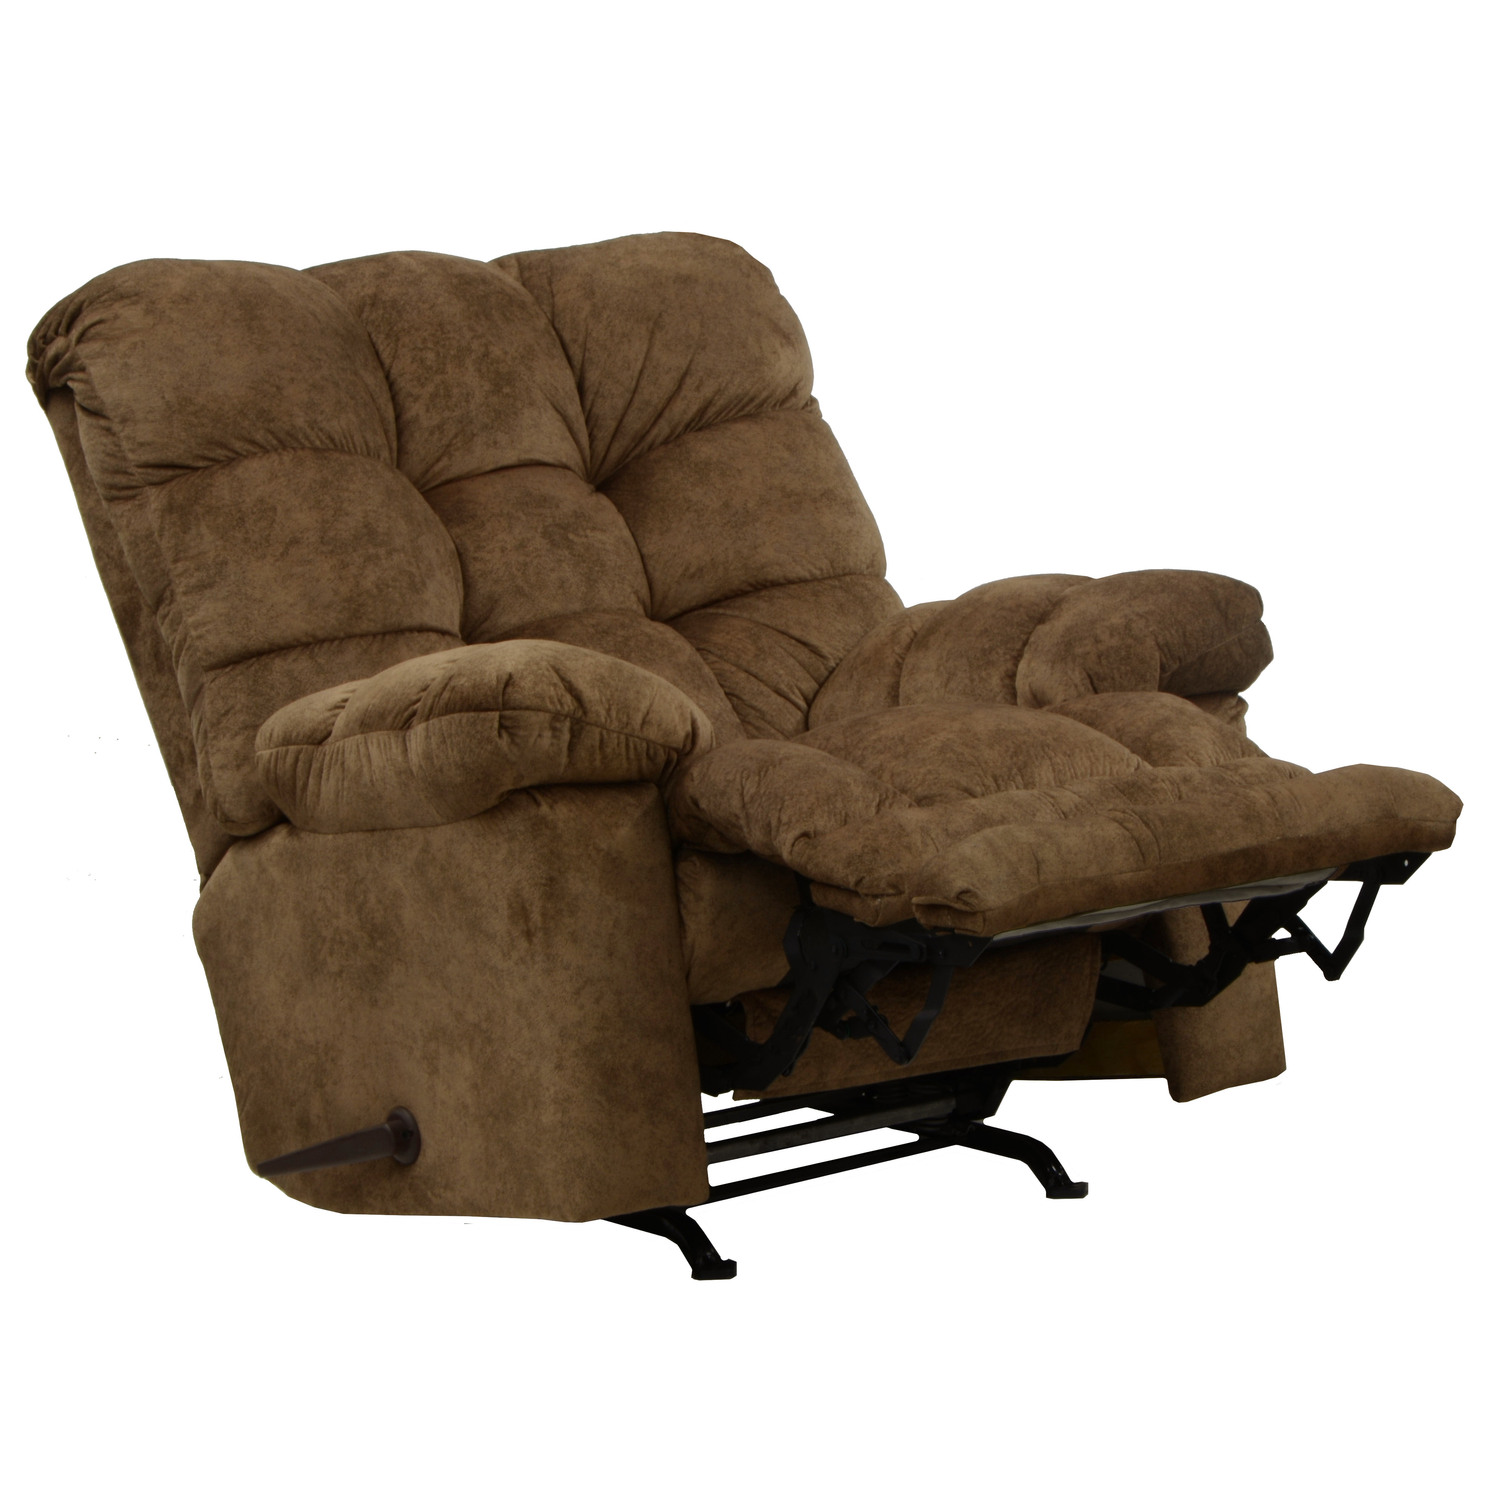 Catnapper bronson recliner by oj commerce for Catnapper cloud nine chaise recliner